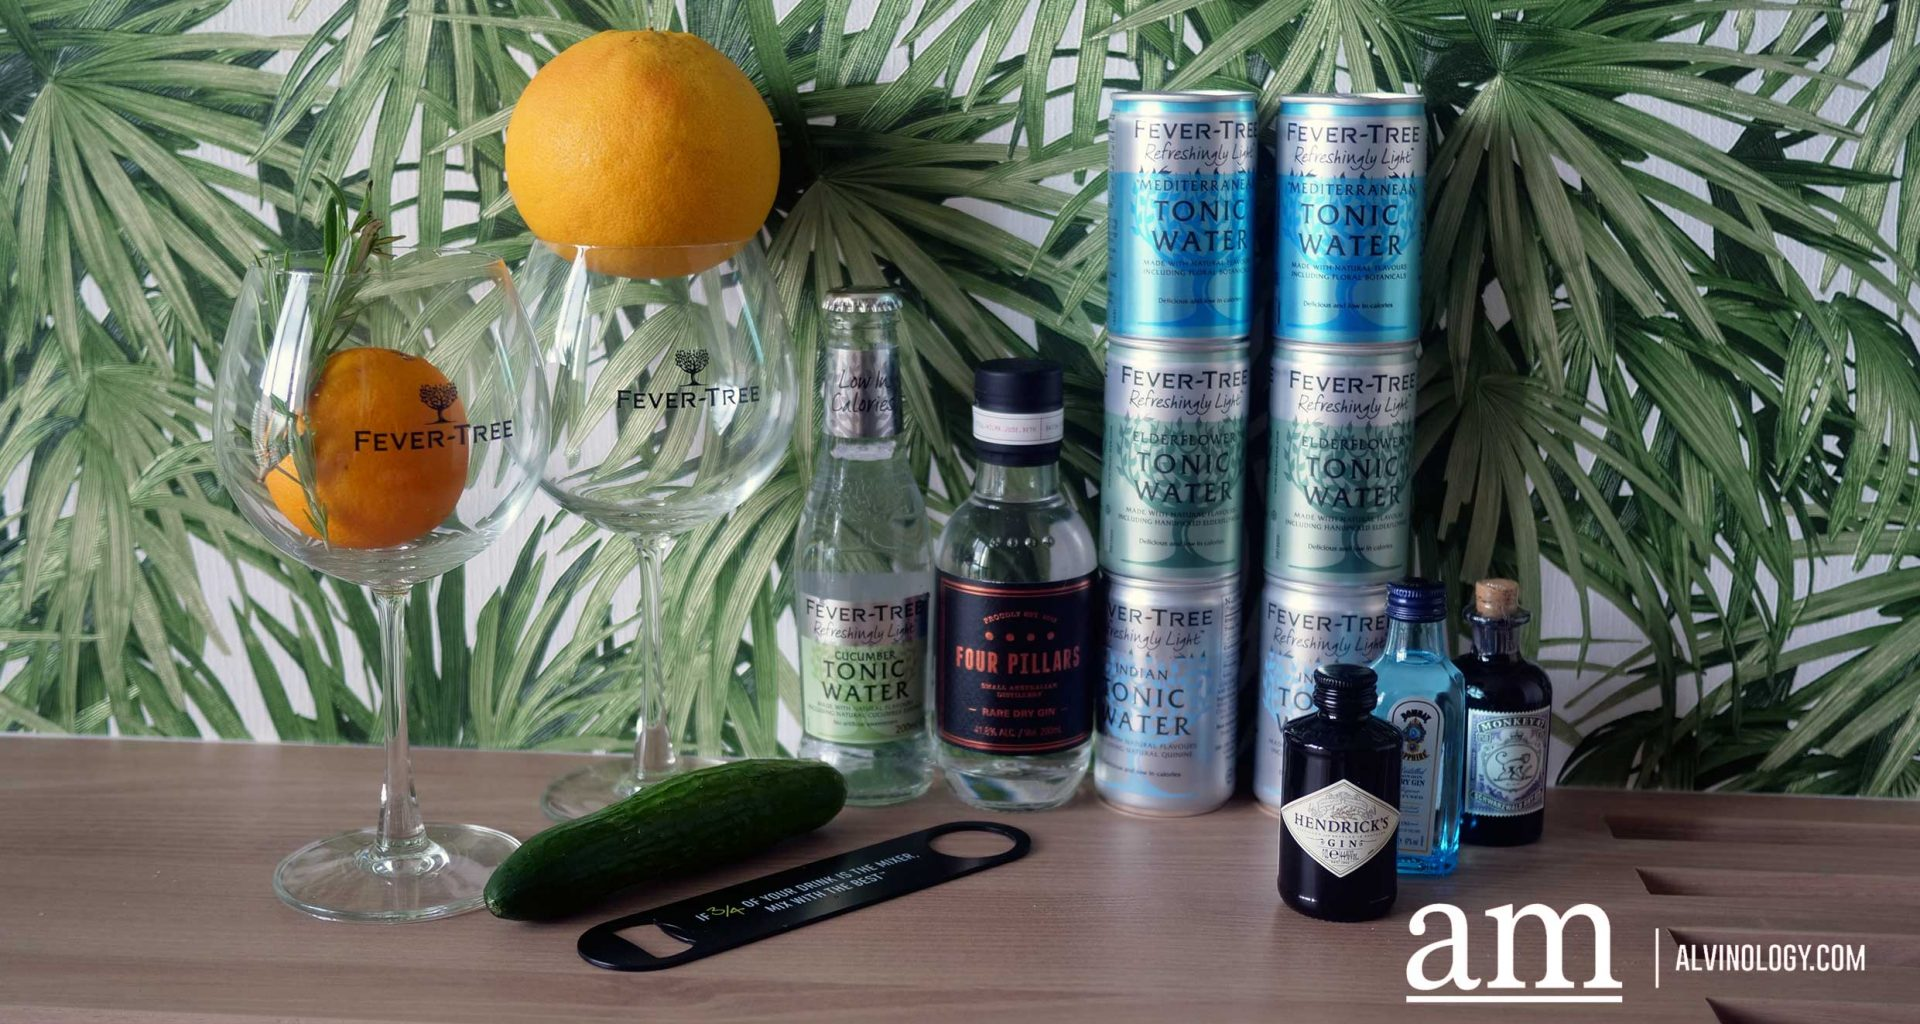 """Premium Mixer brand Fever-Tree Debuts Lighter and Lower Calorie """"Refreshingly Light"""" Tonic Water range in Singapore with four new variants - Alvinology"""